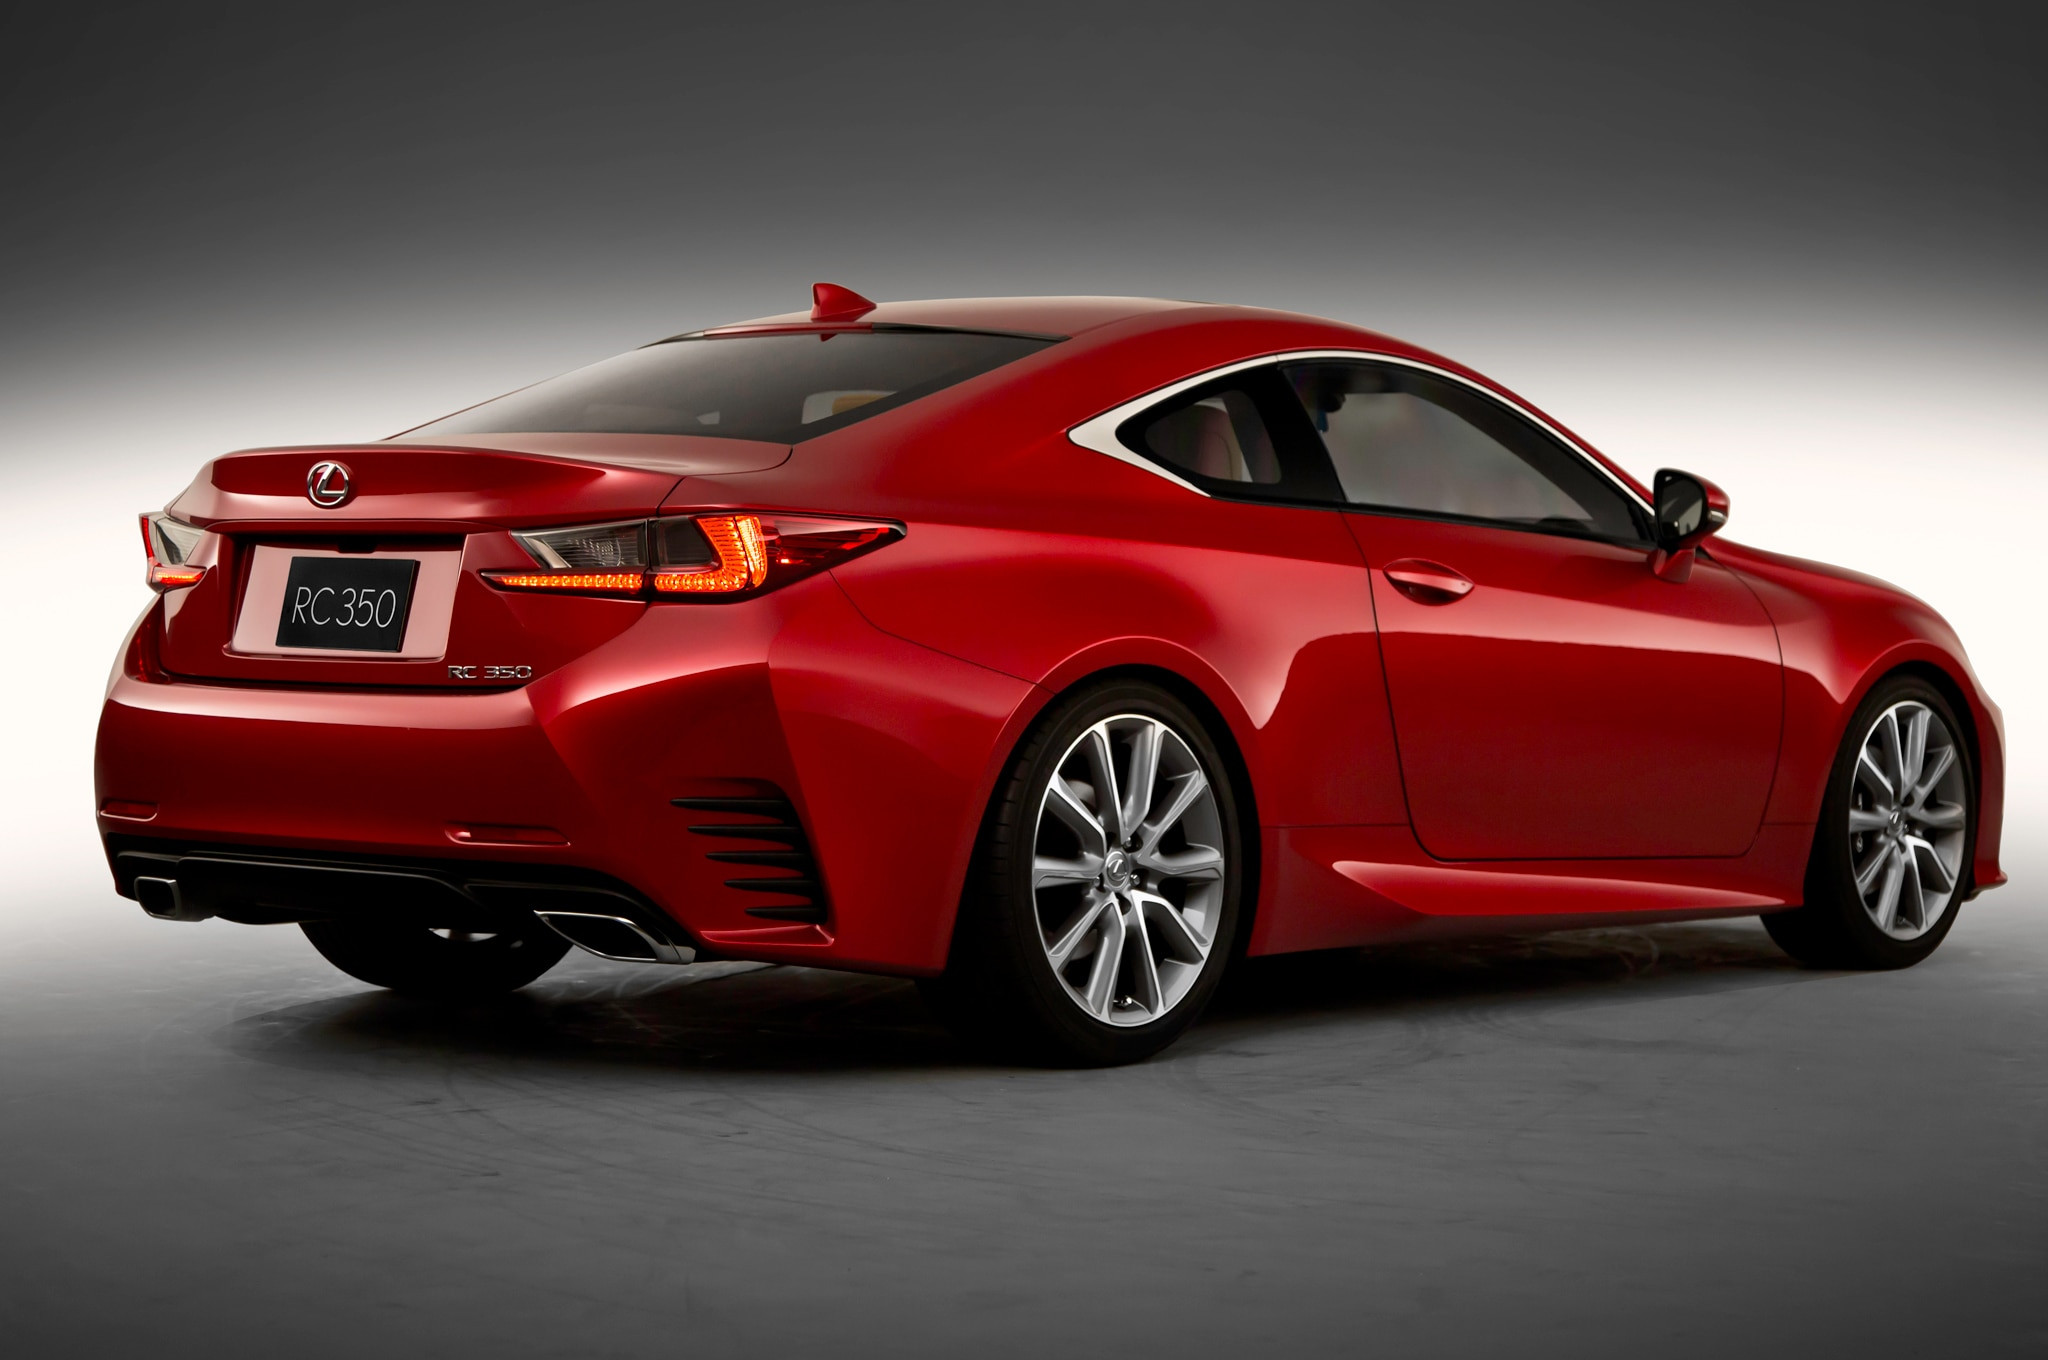 2015 lexus rc350 f sport previewed before 2014 geneva auto show automobile magazine. Black Bedroom Furniture Sets. Home Design Ideas